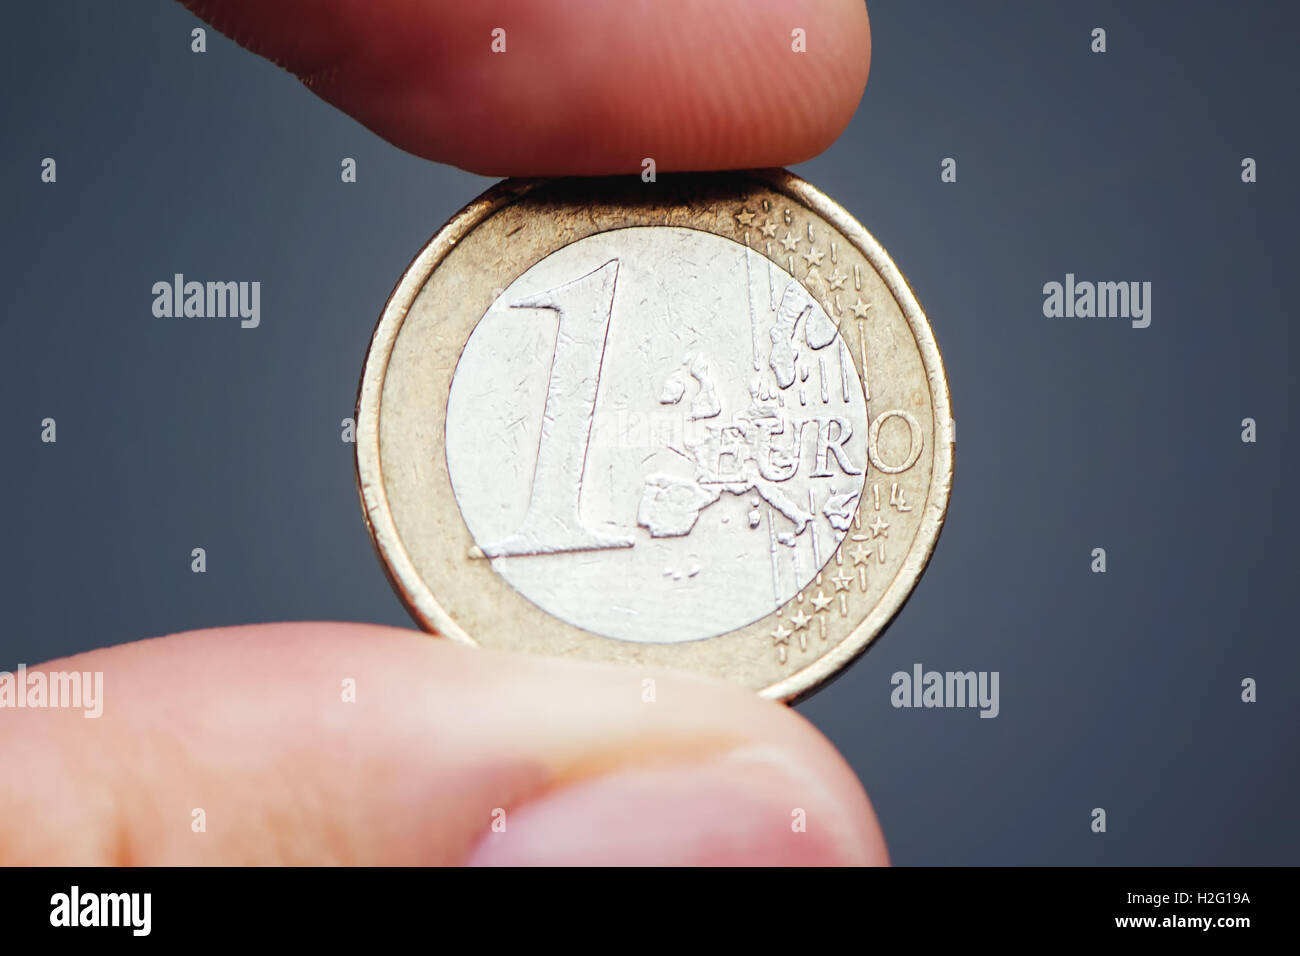 Businessman holding one euro coin between fingers, close up with selective focus - Stock Image